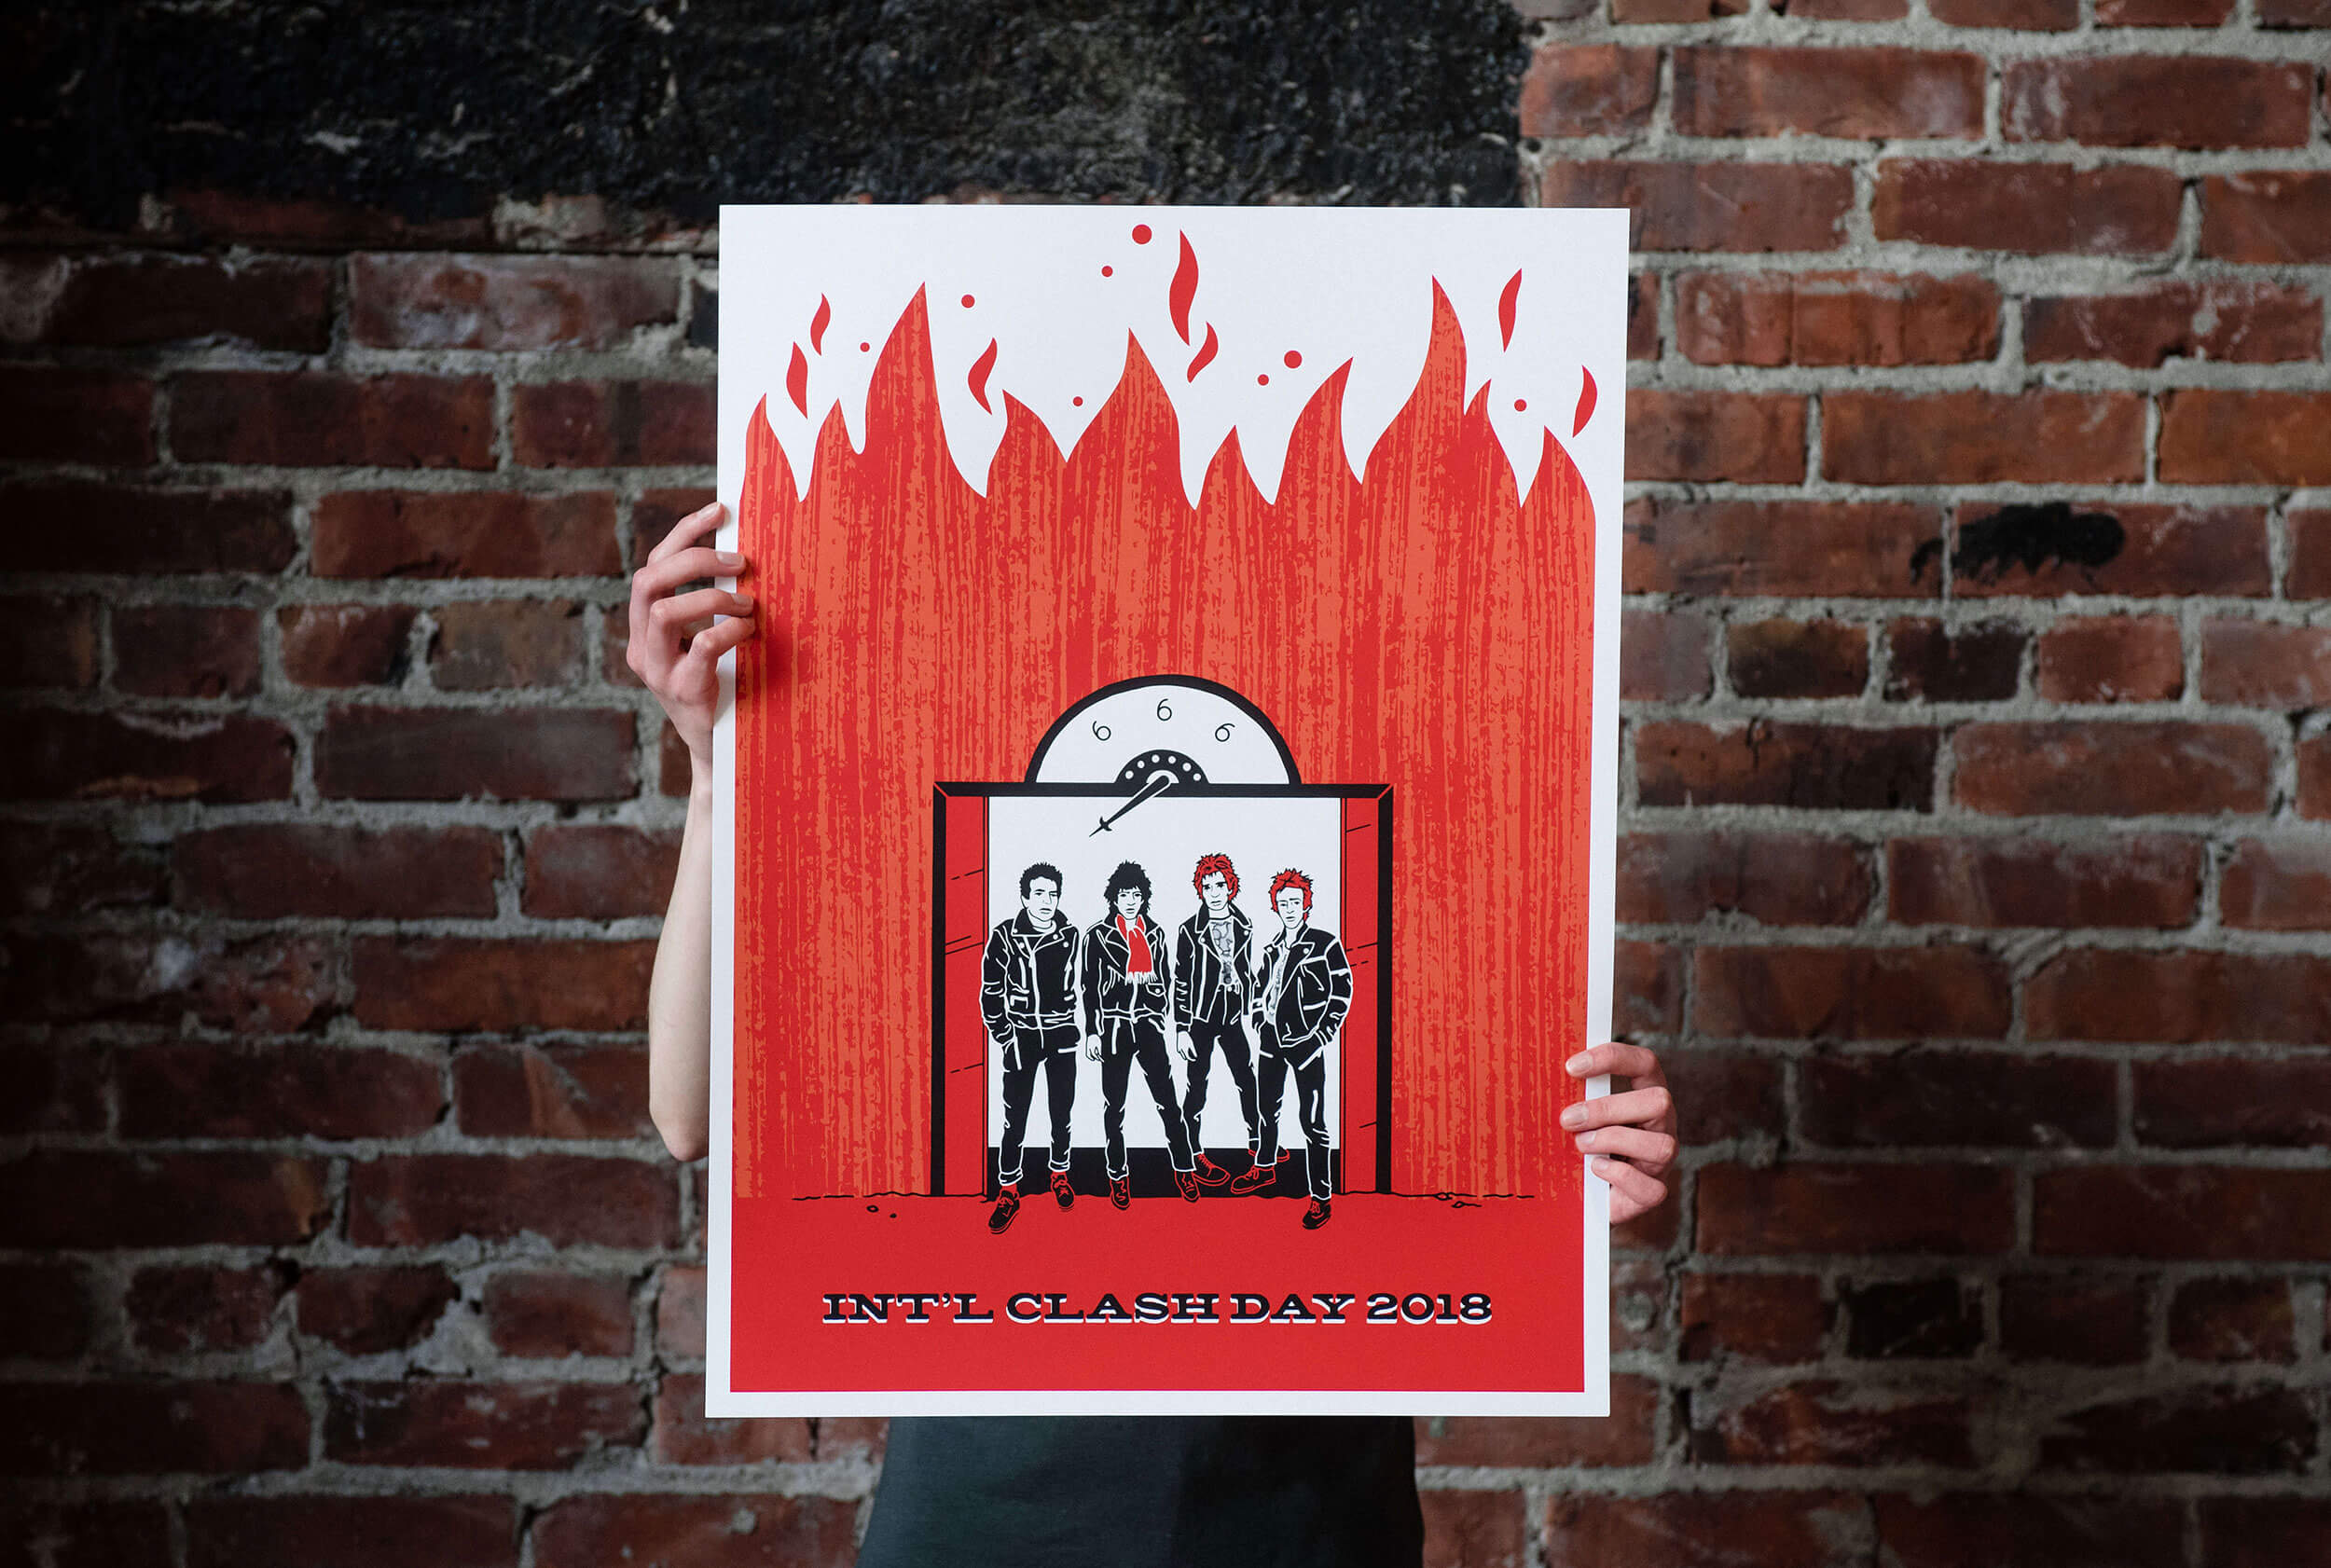 Skye Stewart's International Clash Day 2018 poster design. Illustrated from left to right: Joe Strummer, Mick Jones, Paul Simonon, and Topper Headon of the Clash stand in an open elevator against a wall of red-orange flames.